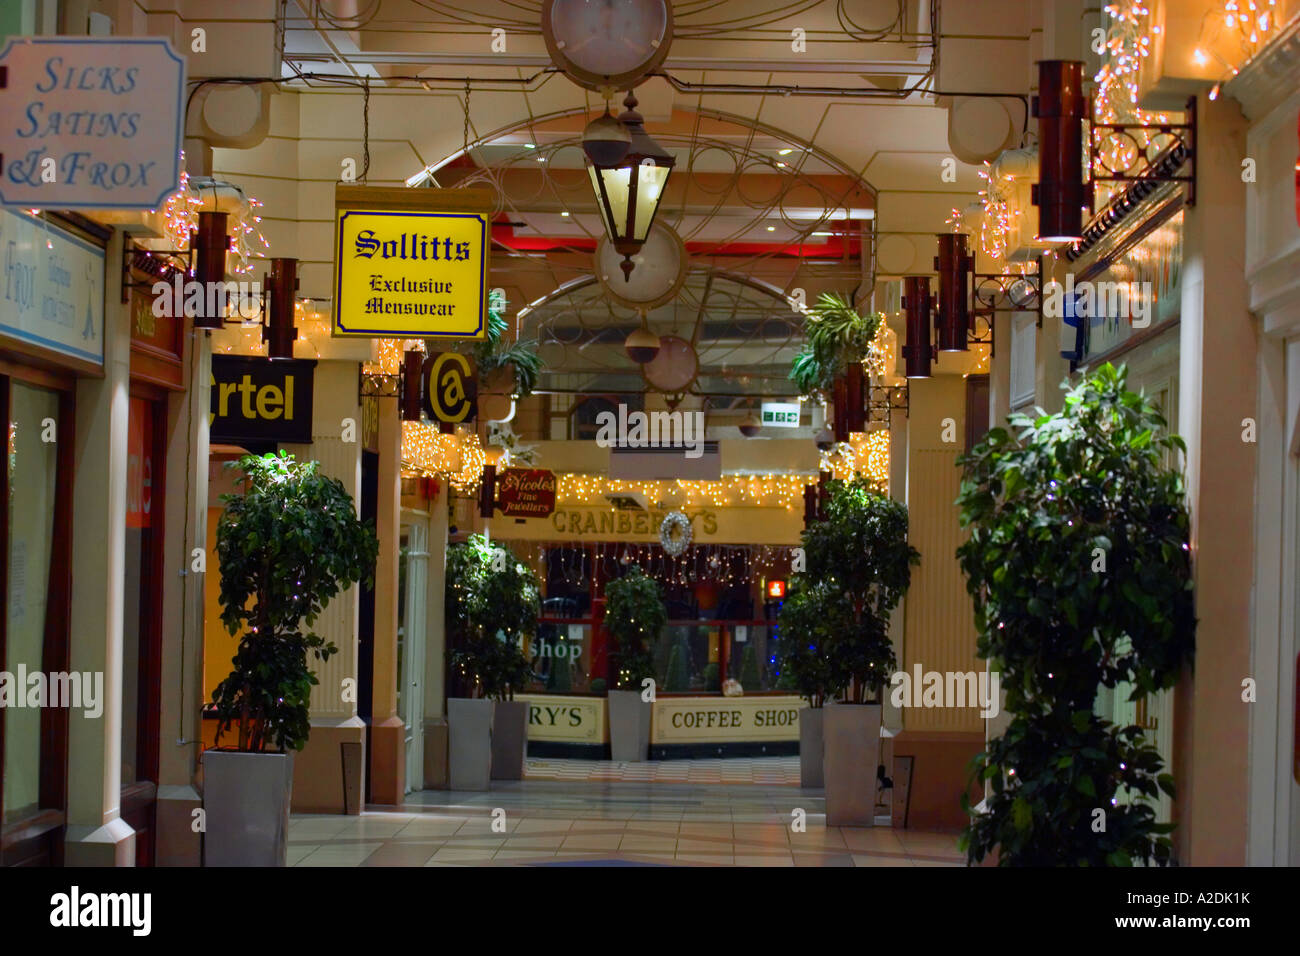 Marble arch retail mall shops to let in Southport, Merseyside, UK. Stock Photo